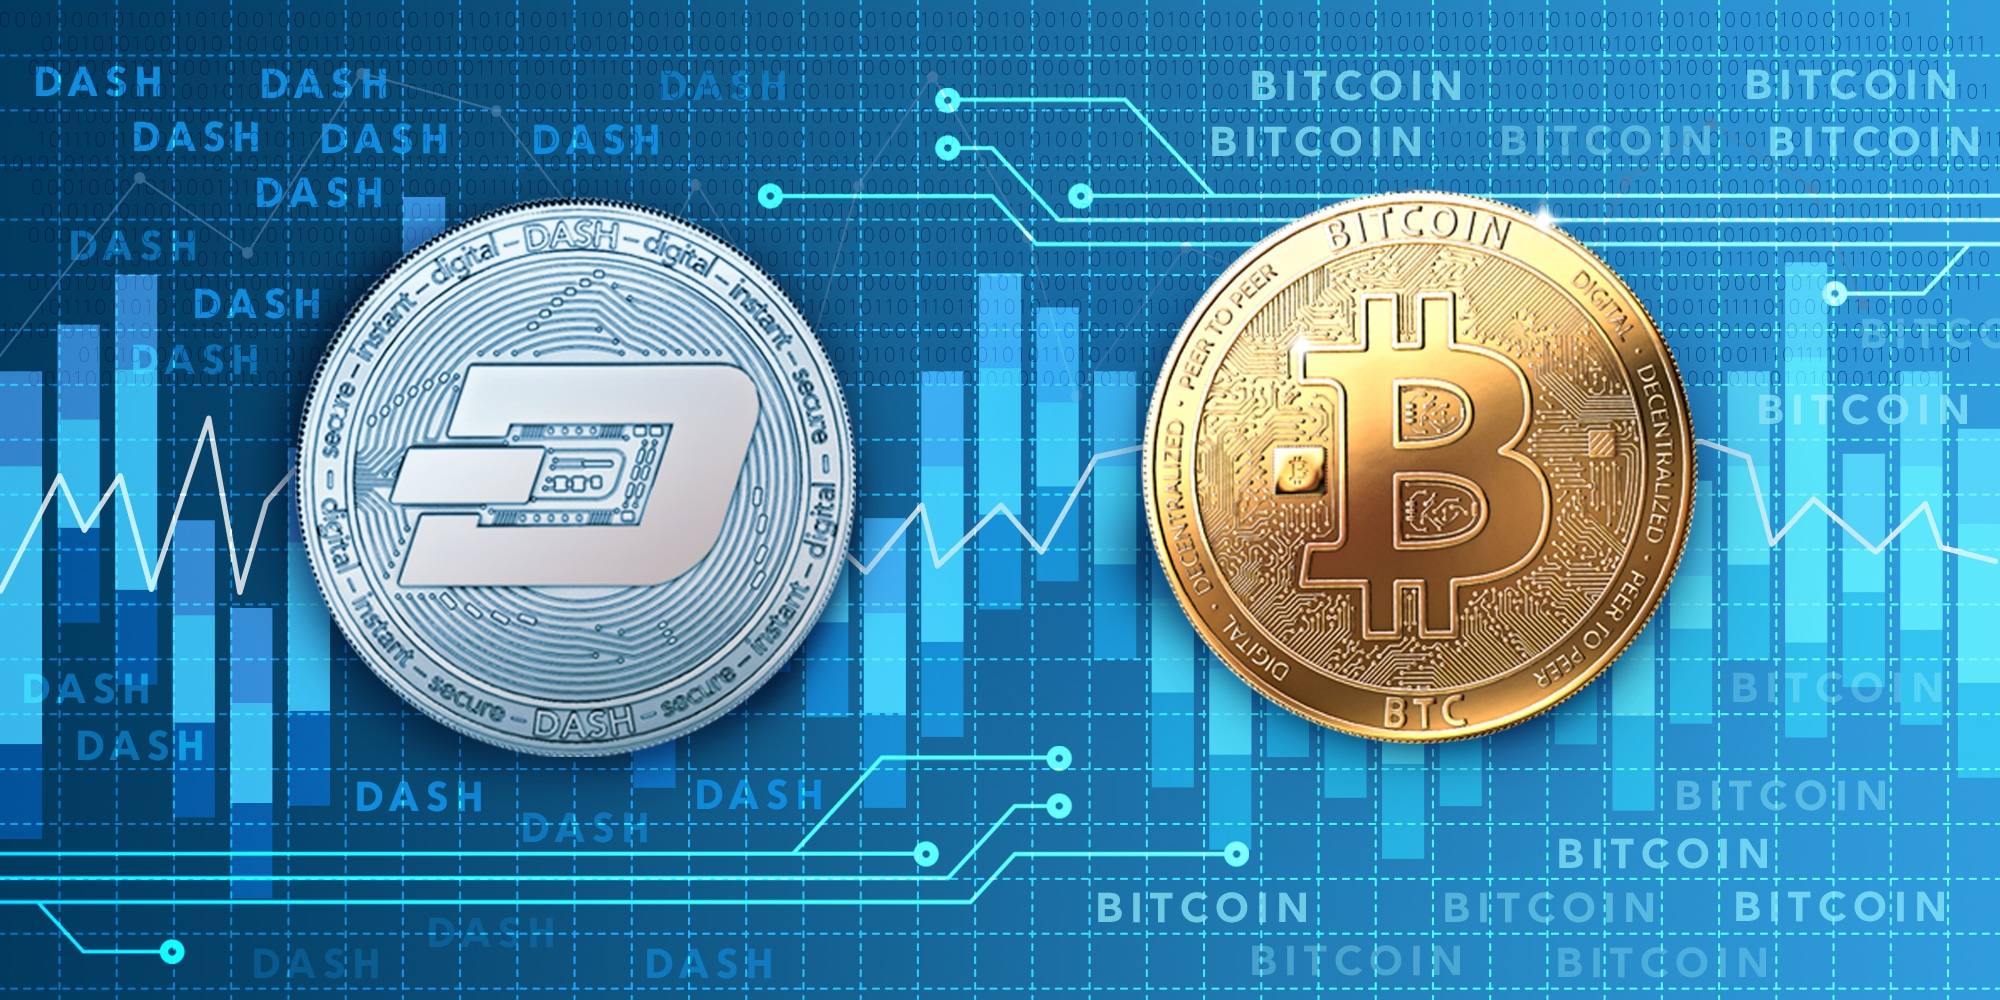 Difference Between Bitcoin and Dash Coin